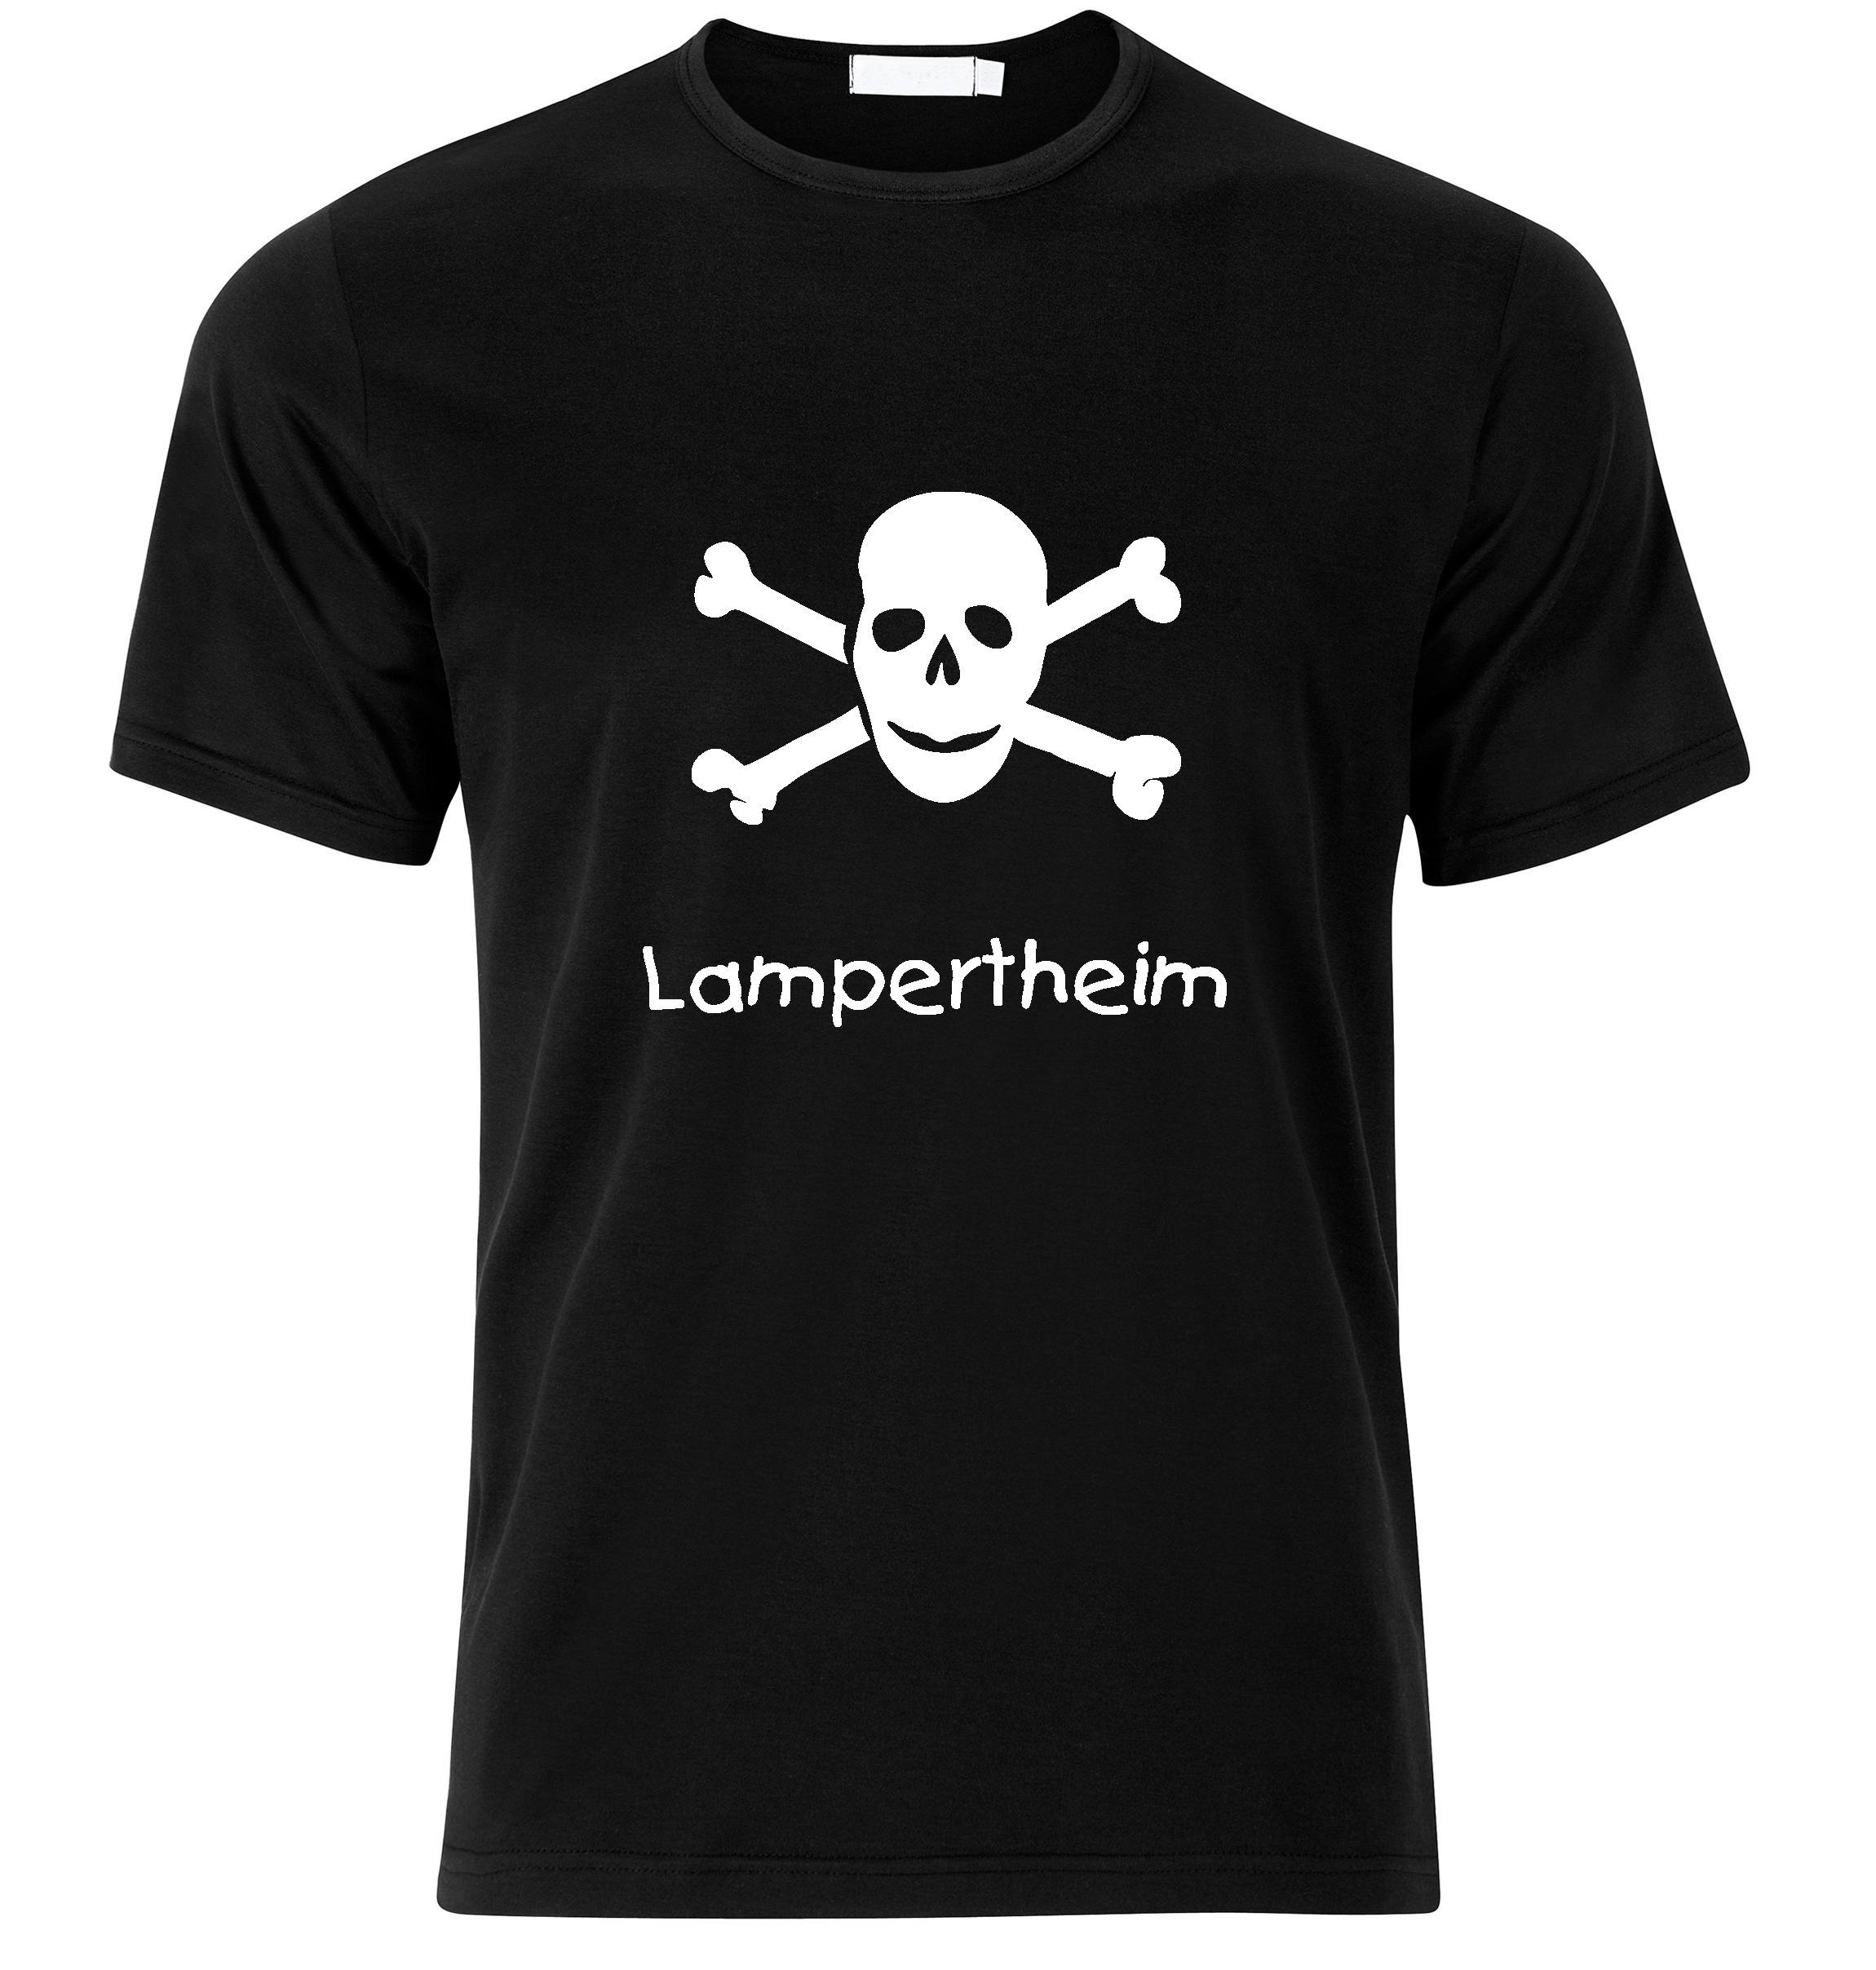 T-Shirt Lampertheim Jolly Roger, Totenkopf